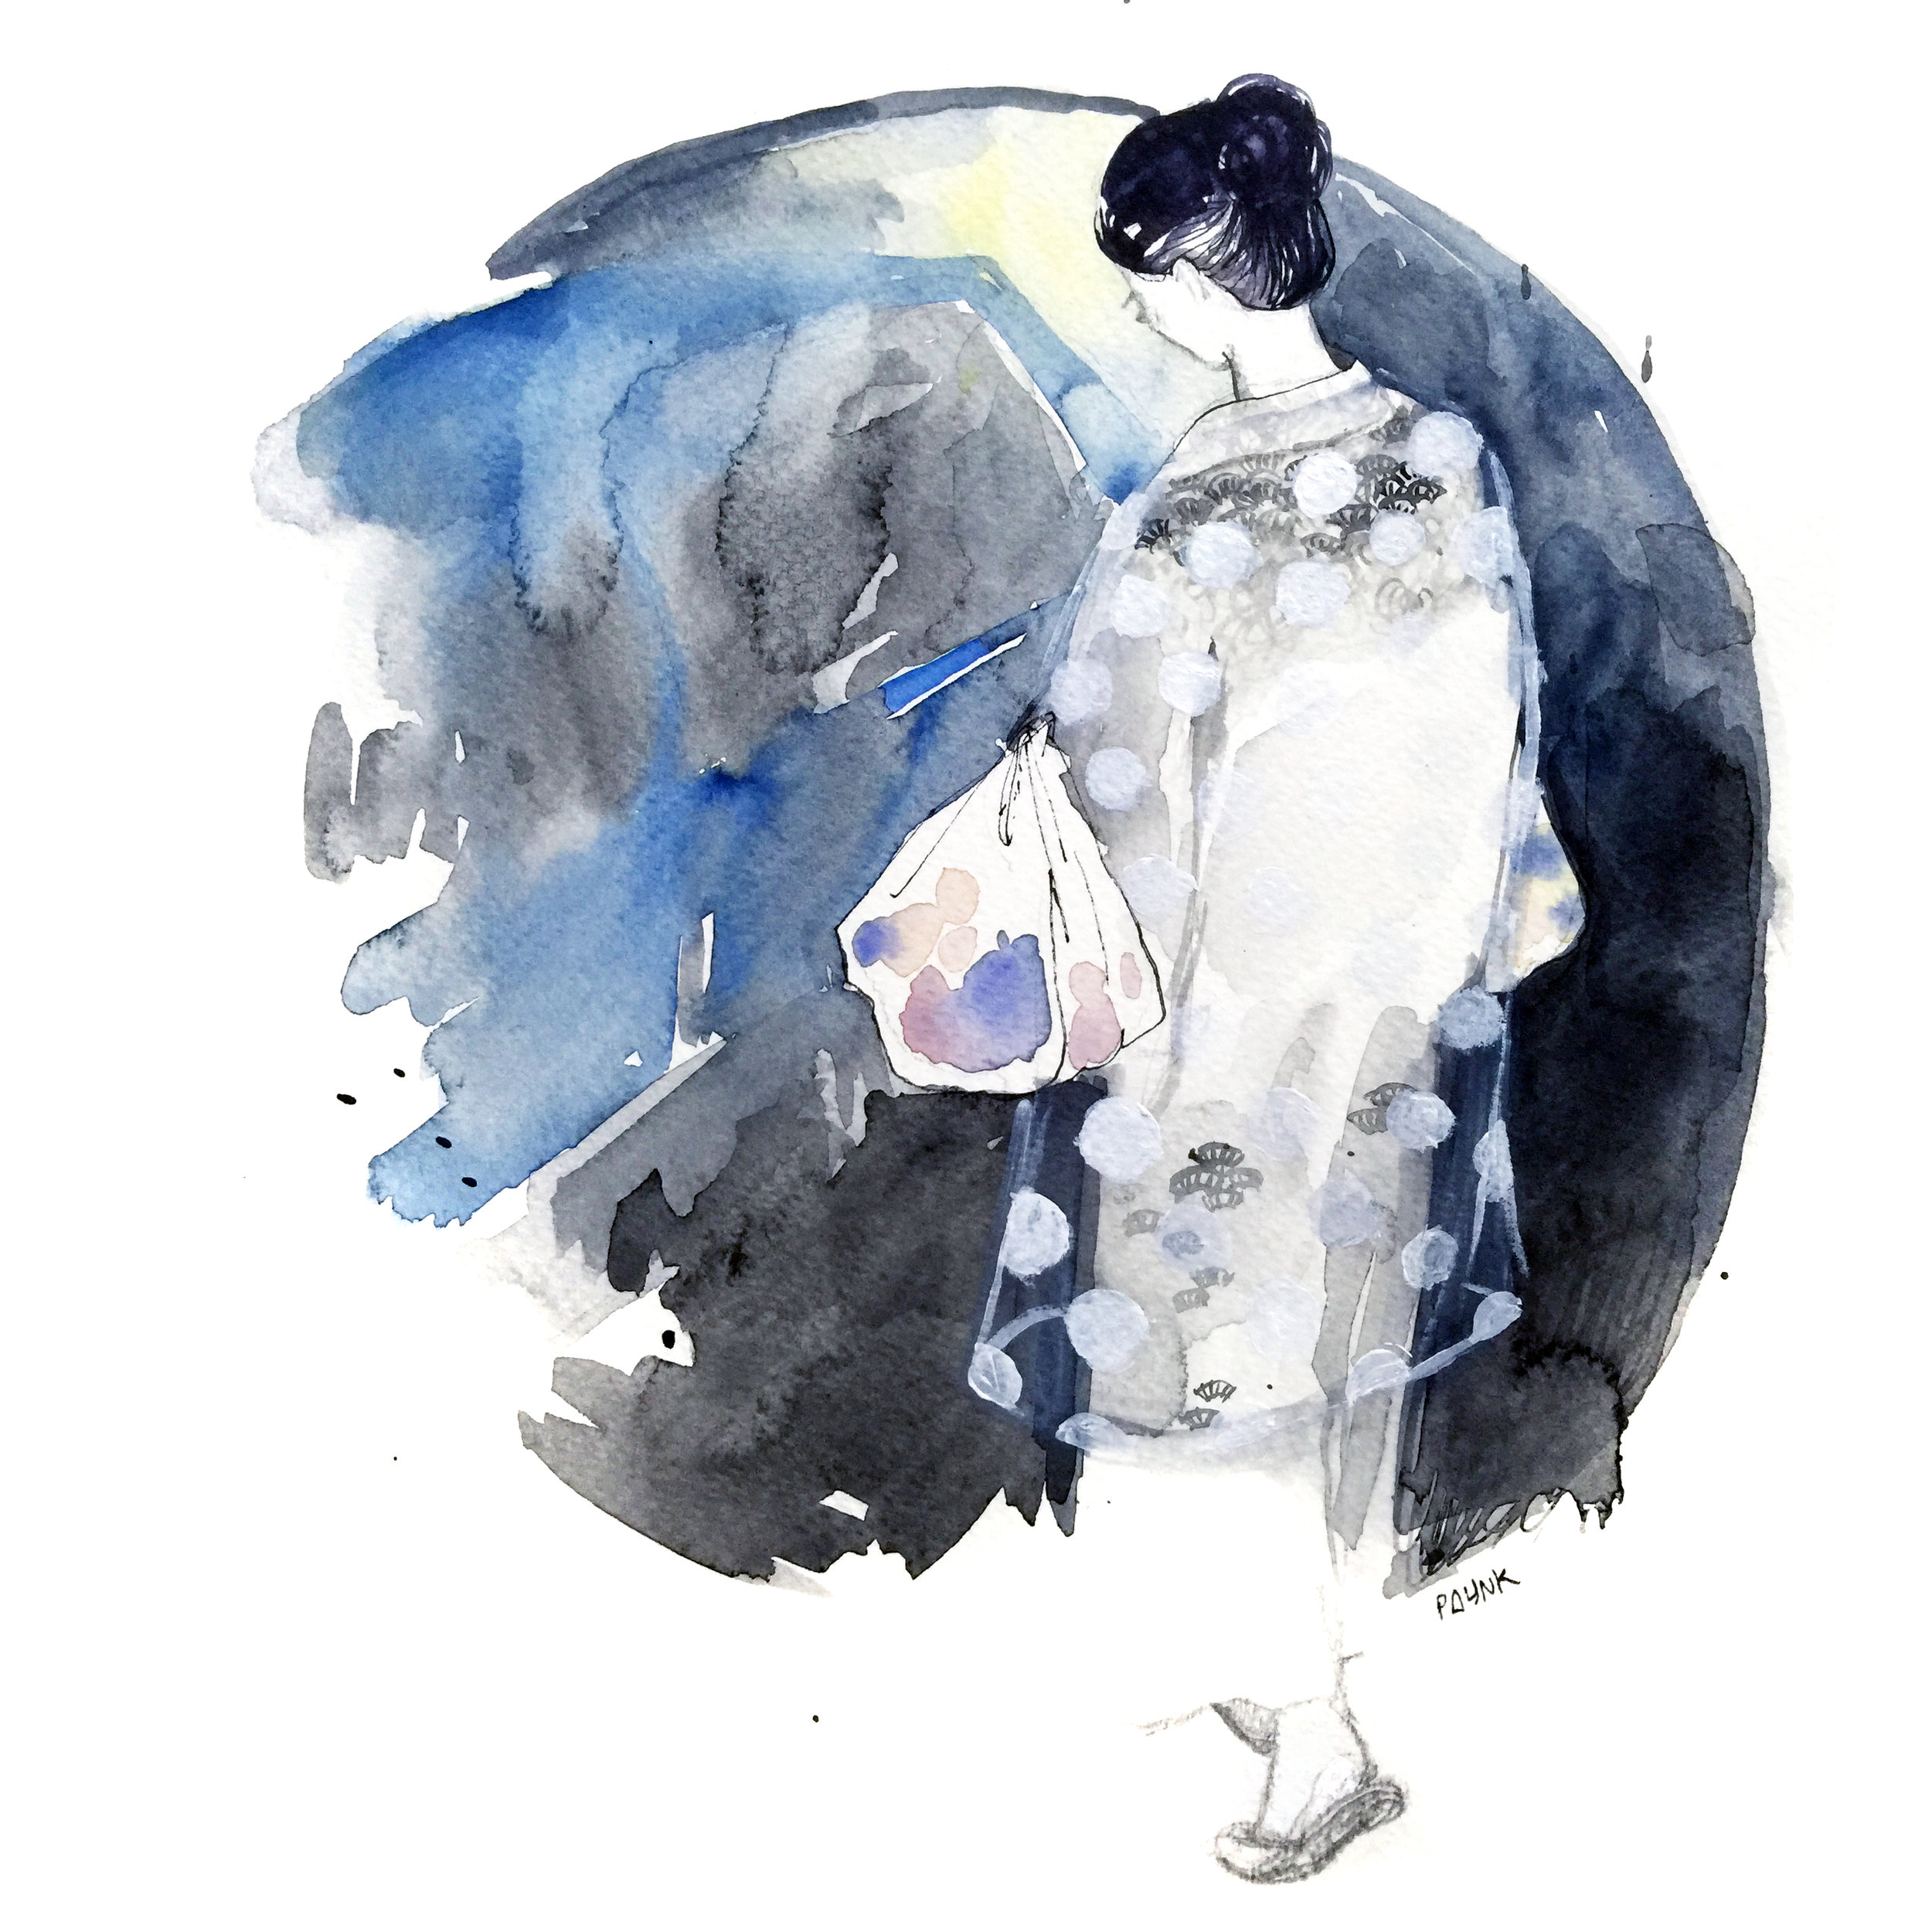 Unknown Japanese Lady   She was getting onto a cab, carrying loads of grocery bags on both arms, wearing a beautiful white  yukata  with a sheer polka-dotted robe thingy. It was so bizarre and interesting but it happened too fast for me to take a photo. So I drew a picture afterwards.